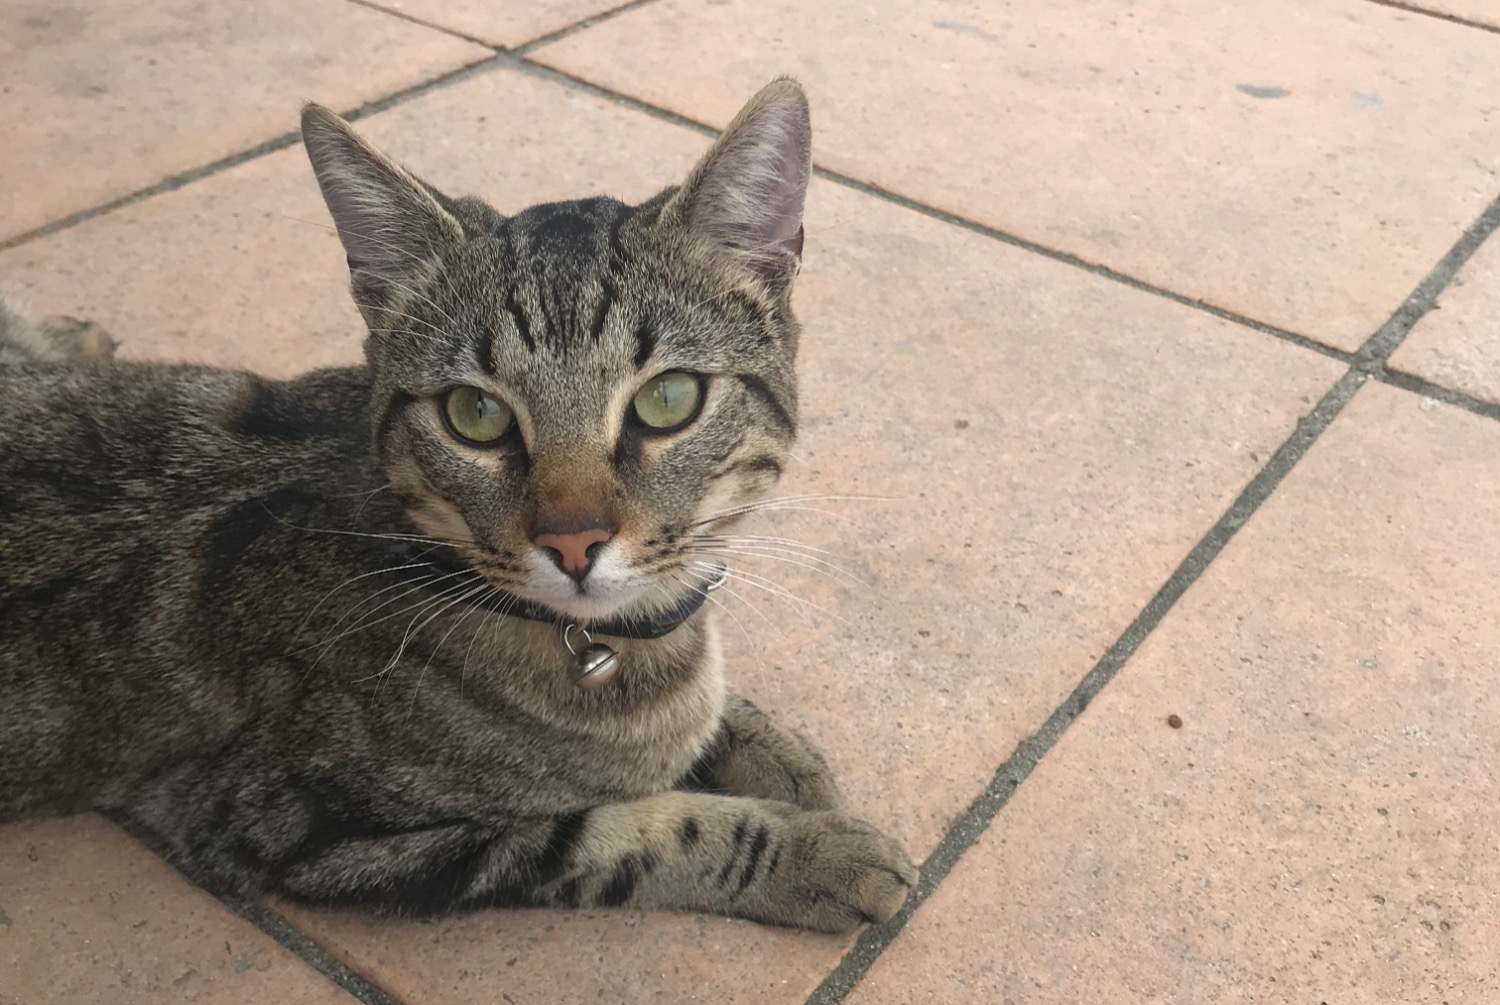 Discovery alert Cat Male , Between 9 and 12 months L'Île-Rousse France